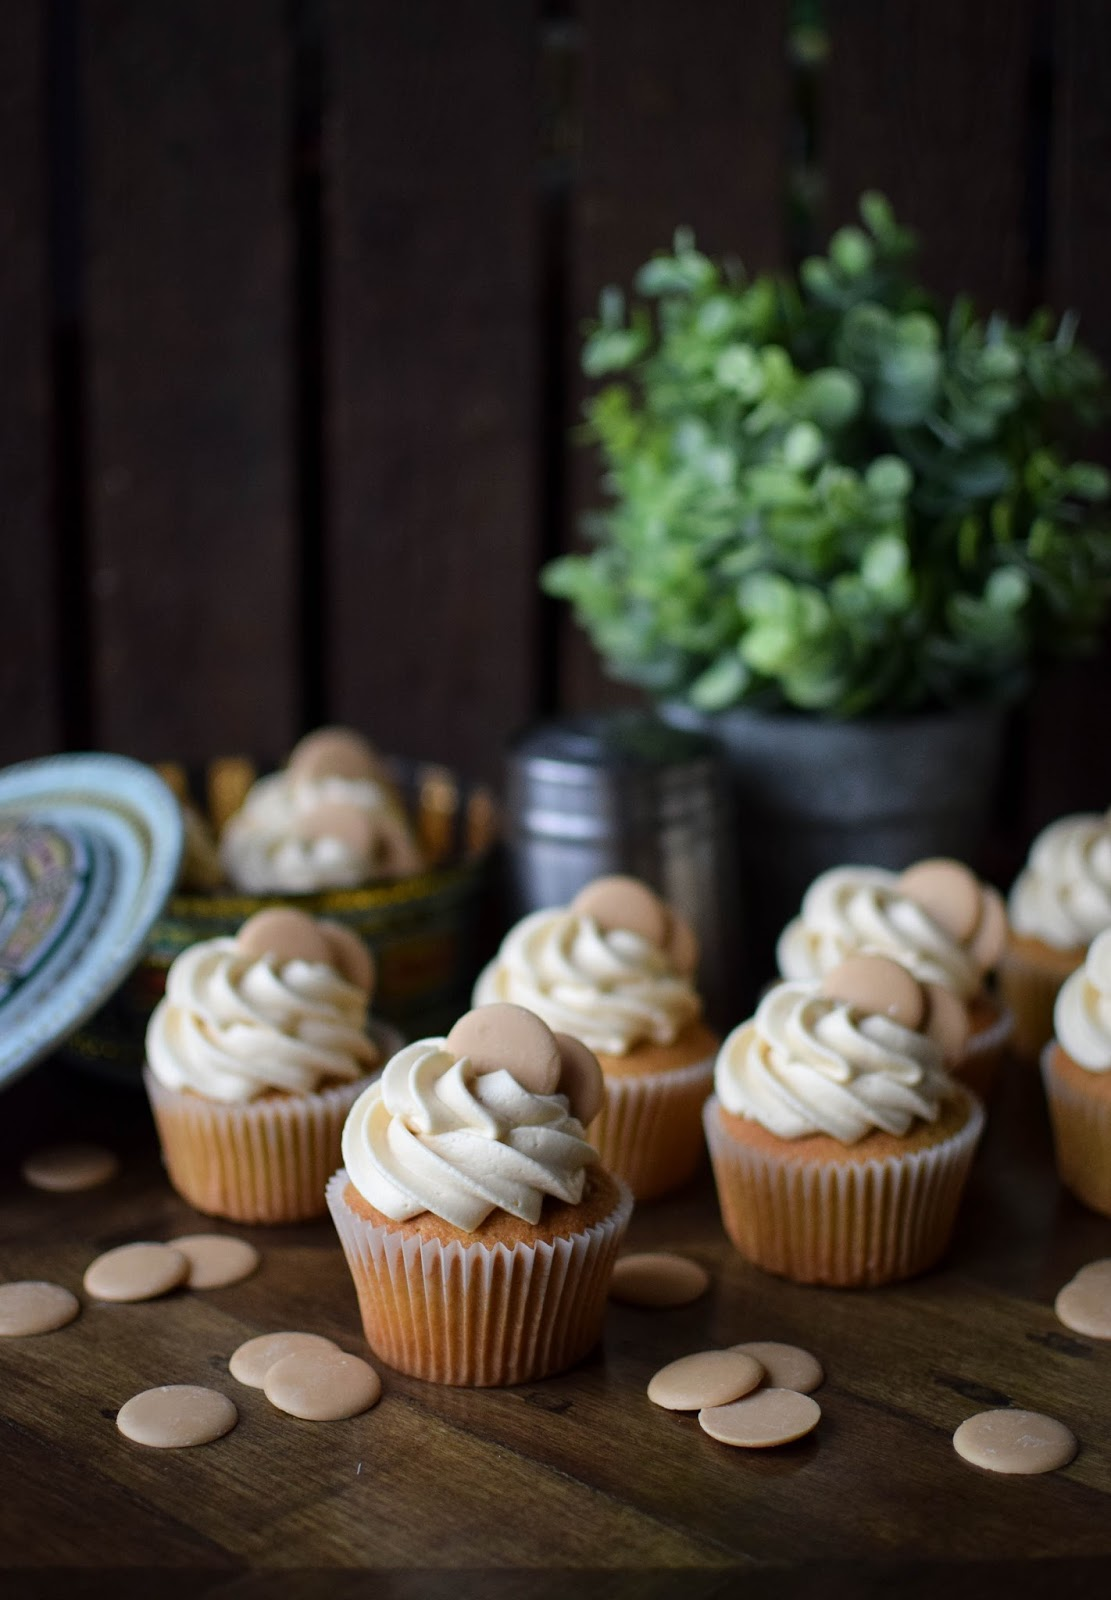 A retro treat turned cupcake, Caramac's have never tasted so good.